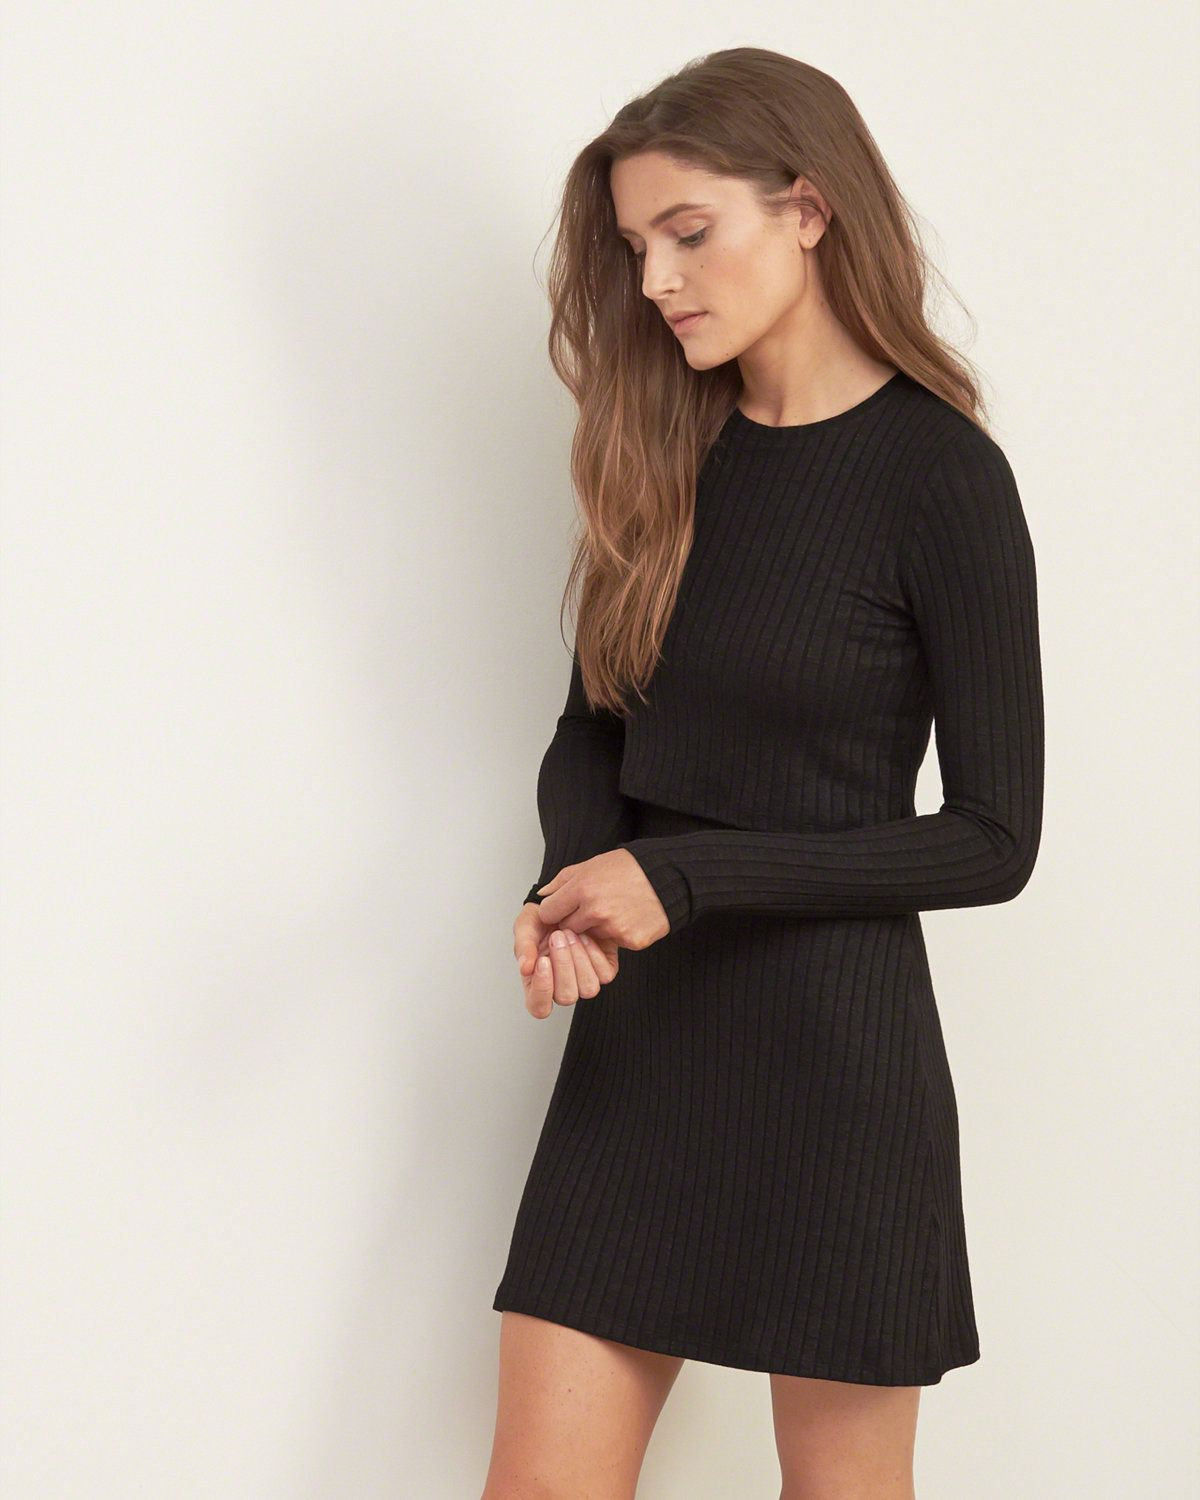 Womens Ribbed Overlay Sweater Dress | A textured dress with a hint of warmth, all-over ribbed texture and overlay detailing, finished with a slim and easy silhouette | Abercrombie.com